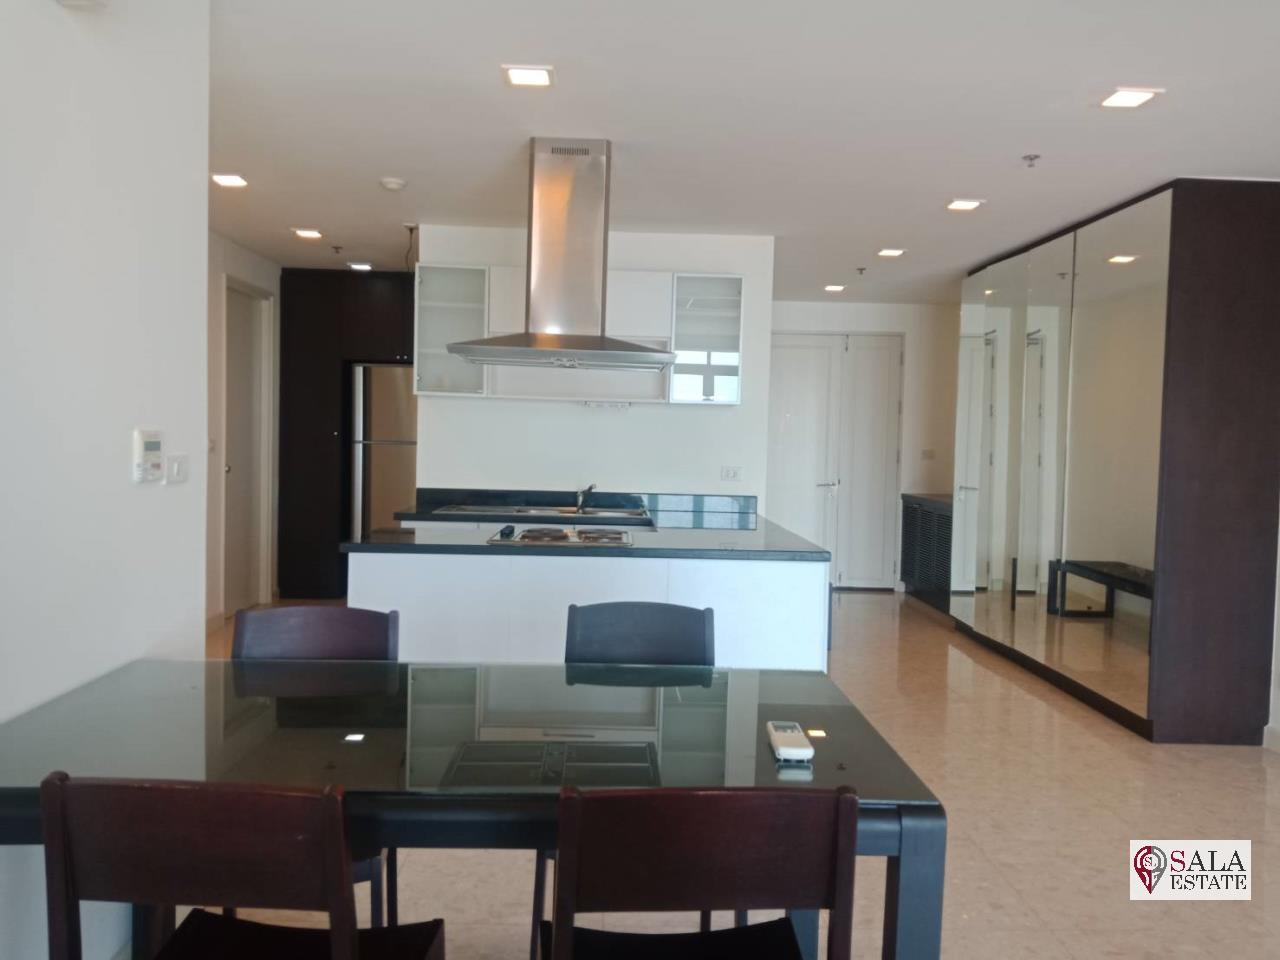 SALA ESTATE Agency's NUSASIRI – BTS EKKAMAI, 3BEDROOMS 2BATHROOMS , FULLY FURNISHED, CITY VIEW 4